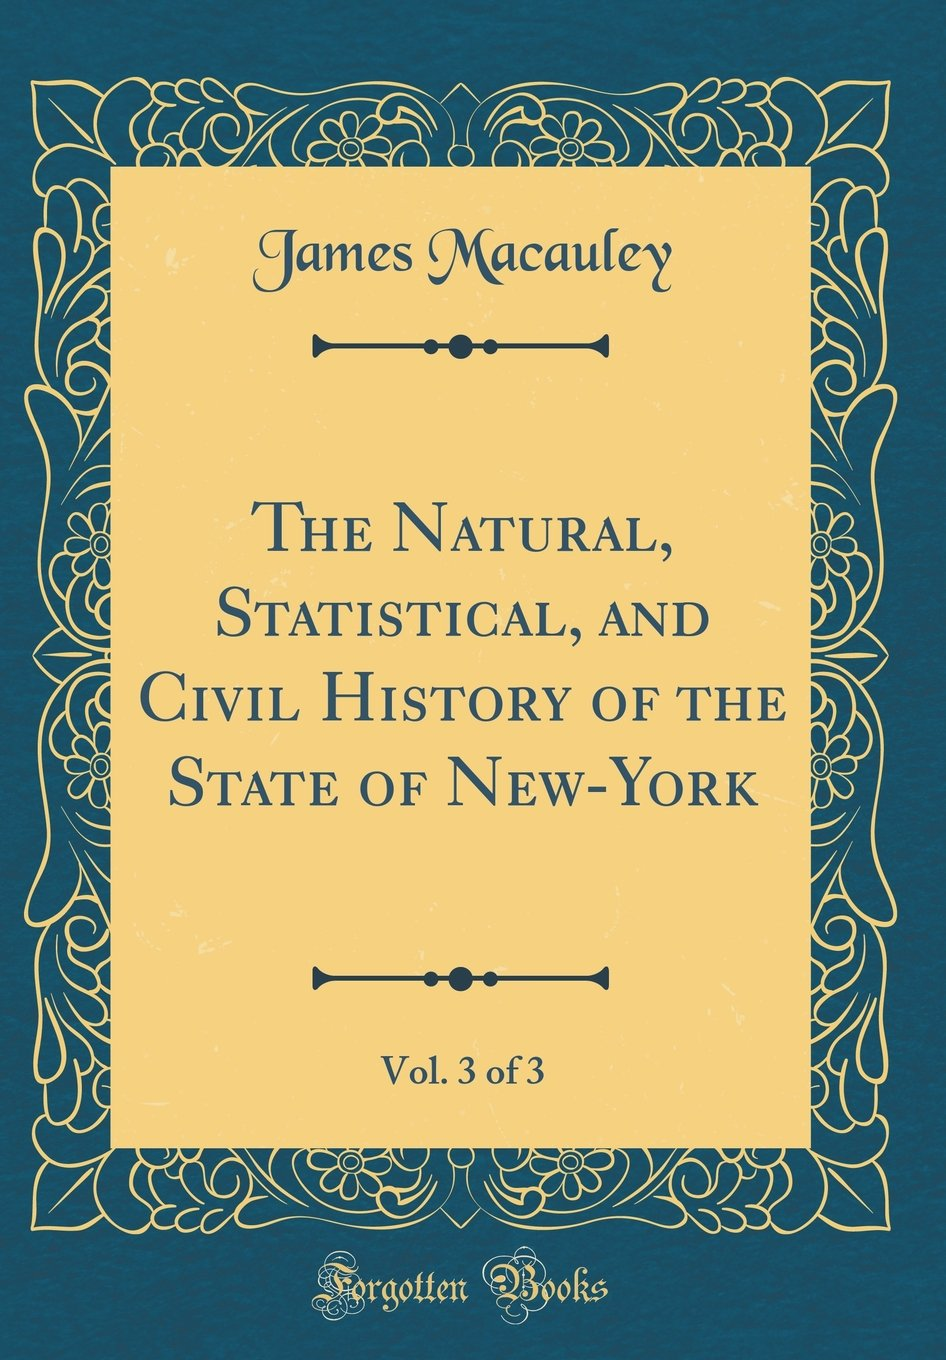 The Natural, Statistical, and Civil History of the State of New-York, Vol. 3 of 3 (Classic Reprint) PDF